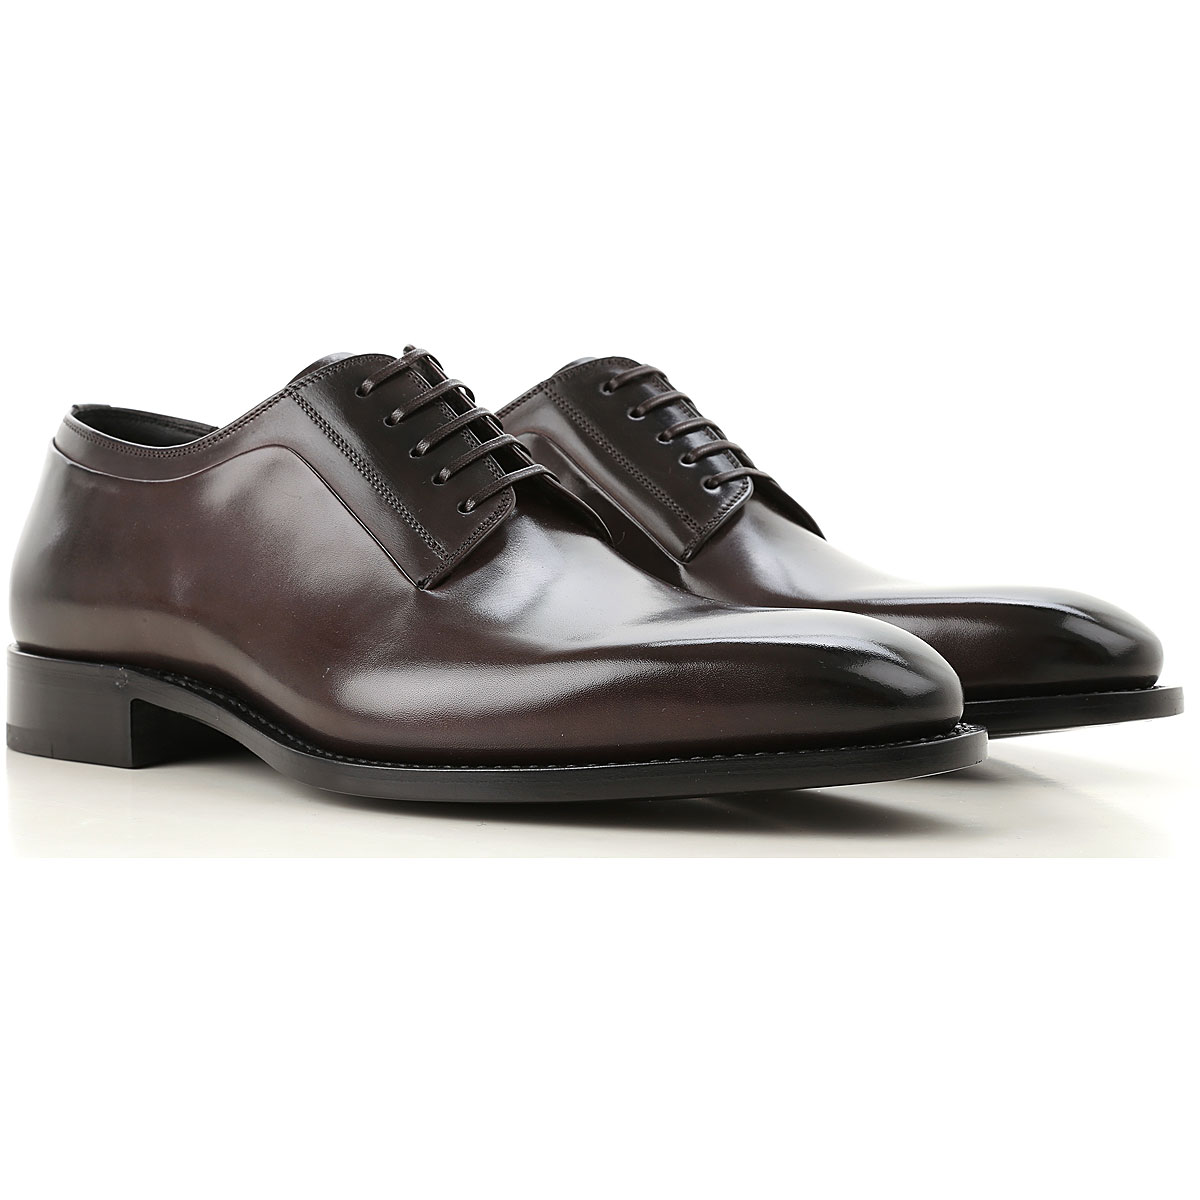 Image of Christian Dior Lace Up Shoes for Men Oxfords, Derbies and Brogues, Black, Leather, 2017, 10 6.5 7.5 9